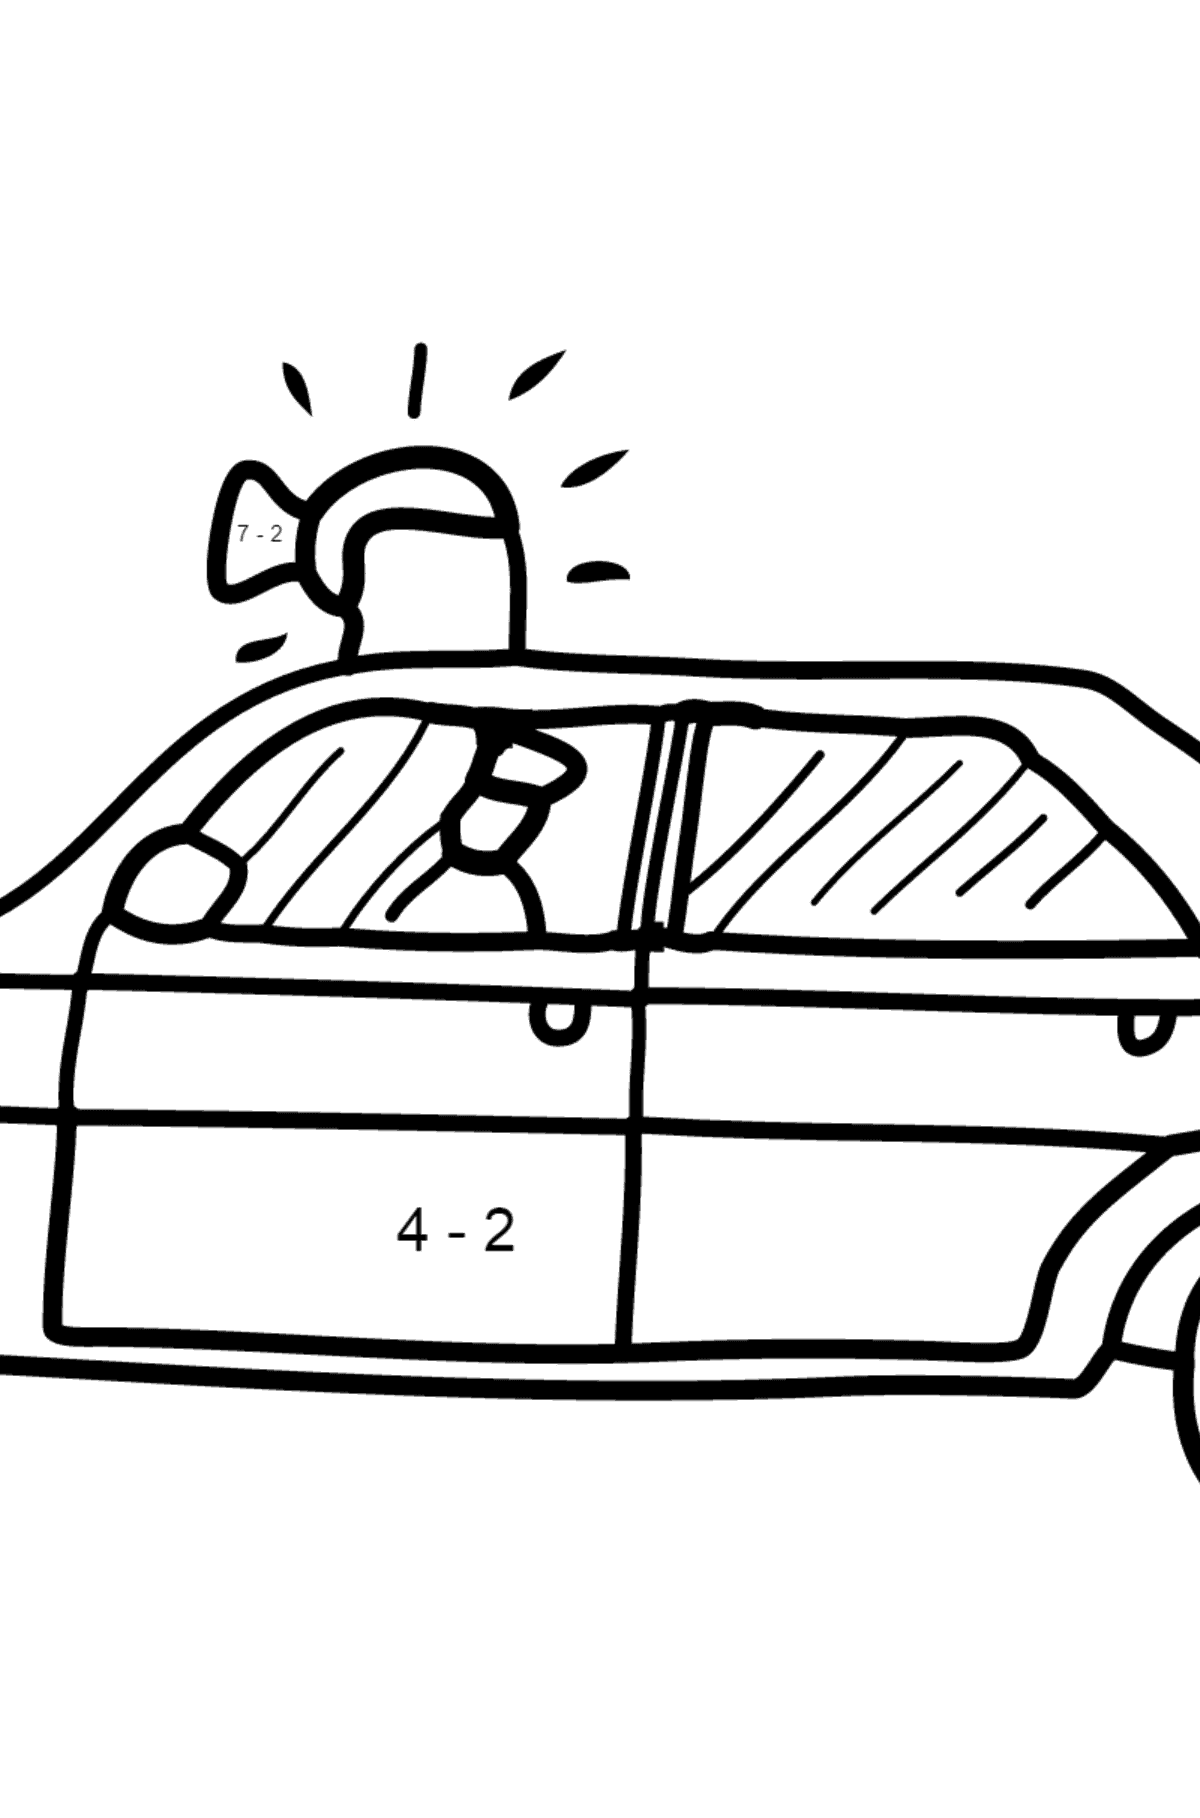 Coloring Page - A Police Car for Children  - Color by Number Substraction